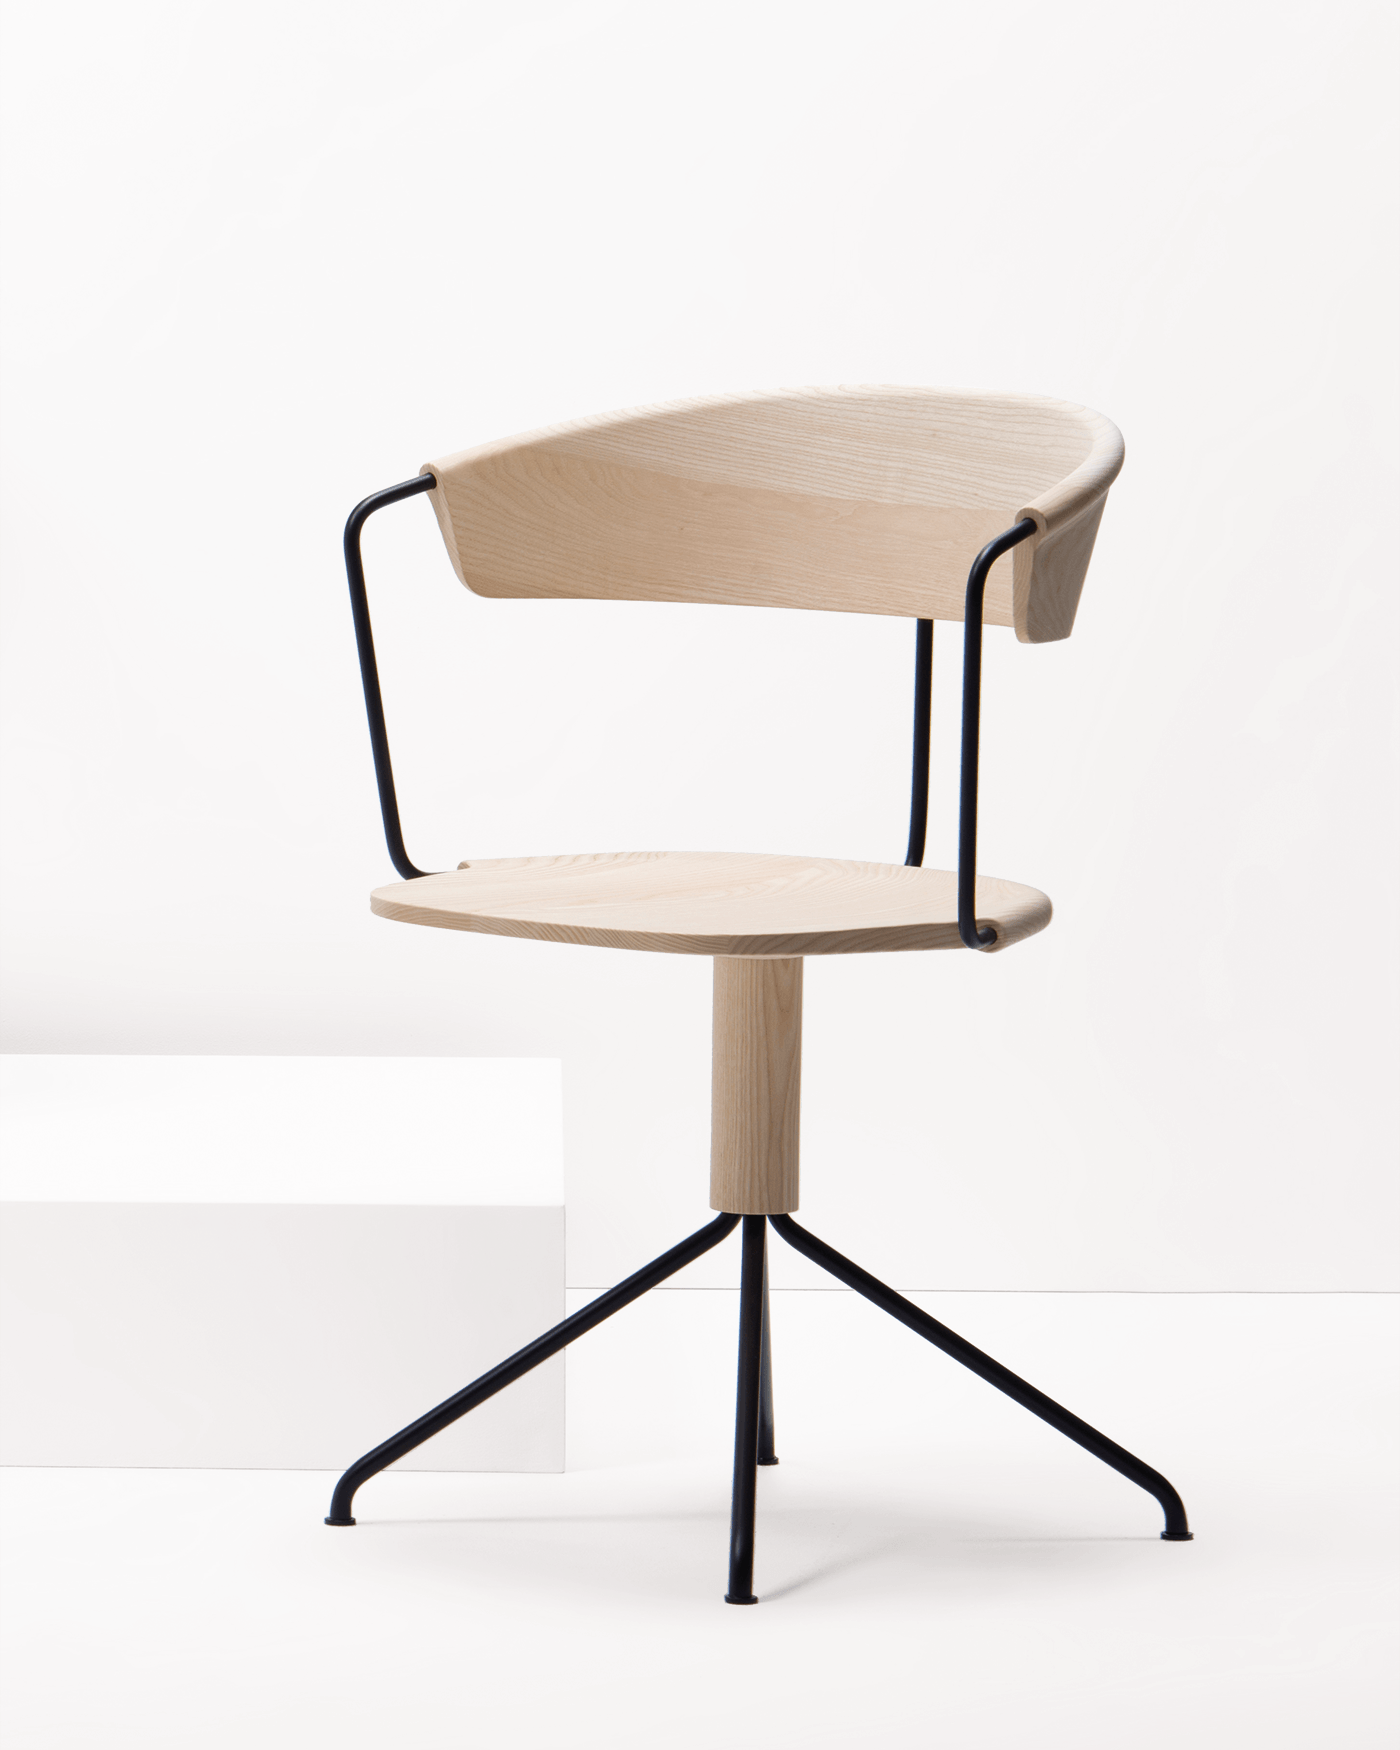 modern swivel chair in ash wood and black tubular steel